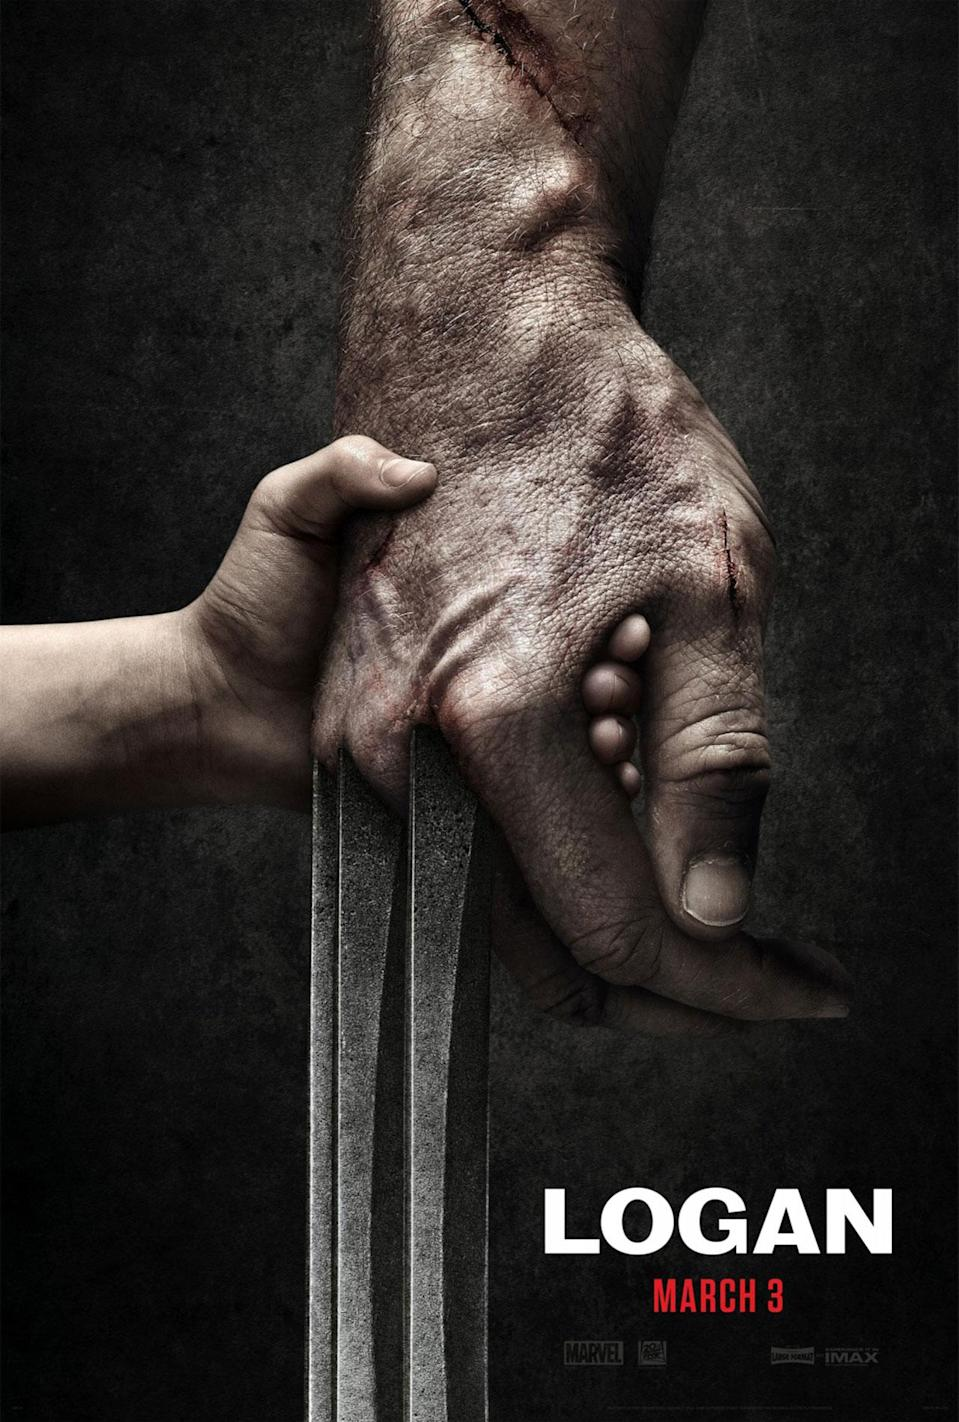 <p>The teaser poster for Hugh Jackman's last Wolverine film is pretty cool, but when you factor in the the width of a grown man's hands, the anatomical impossibility of the child's freakishly long fingers becomes difficult to ignore. (Credit: 20th Century Fox) </p>